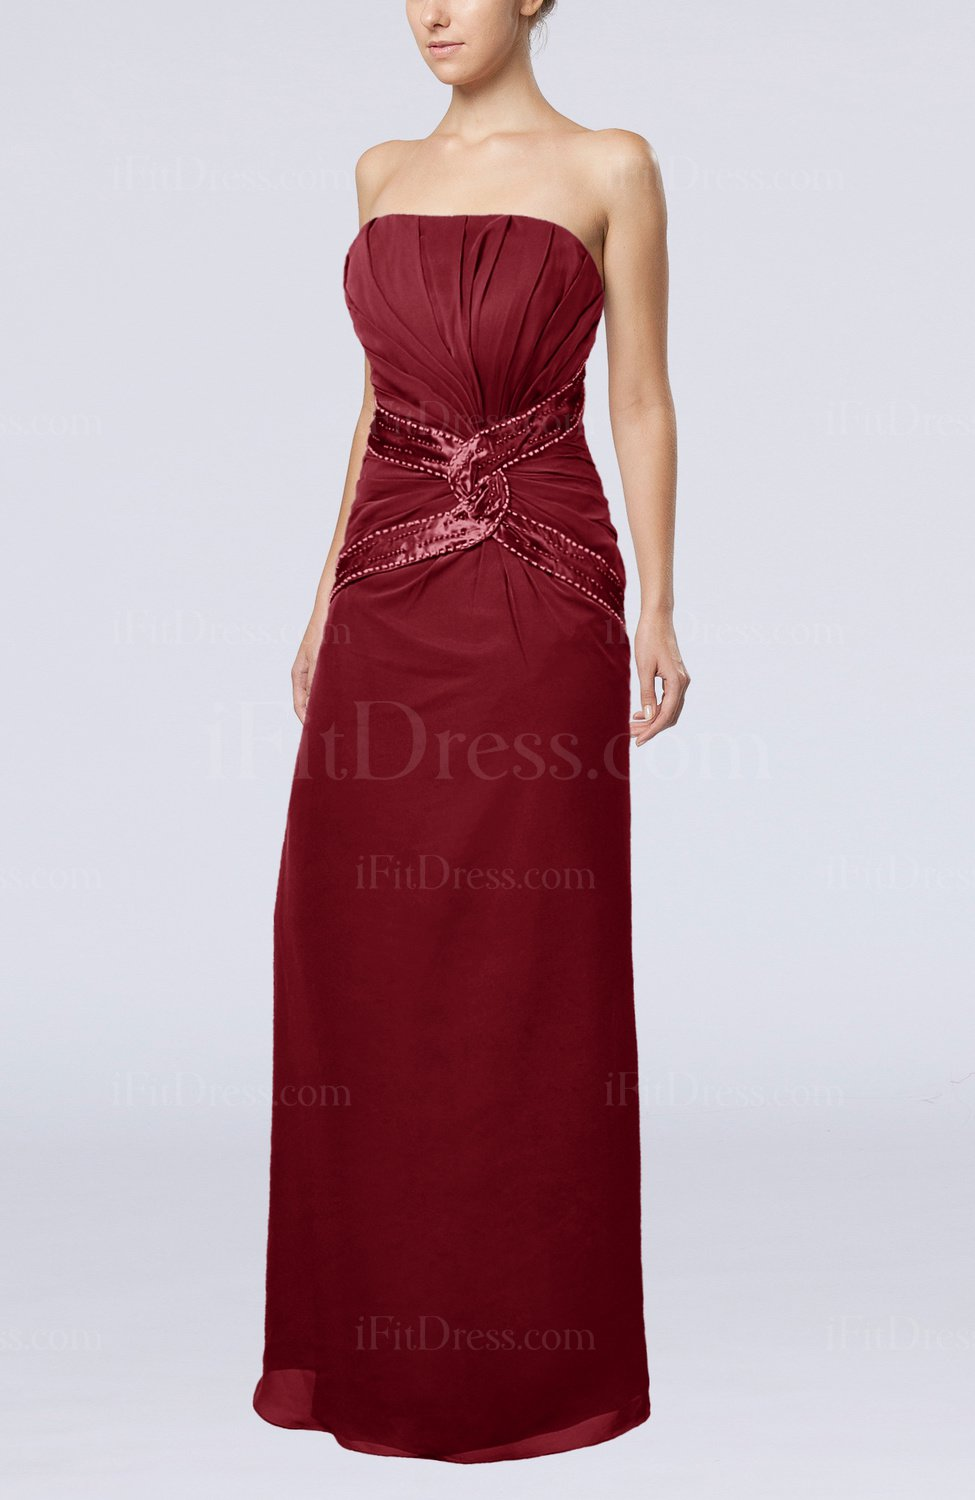 dark red wedding dresses photo - 1